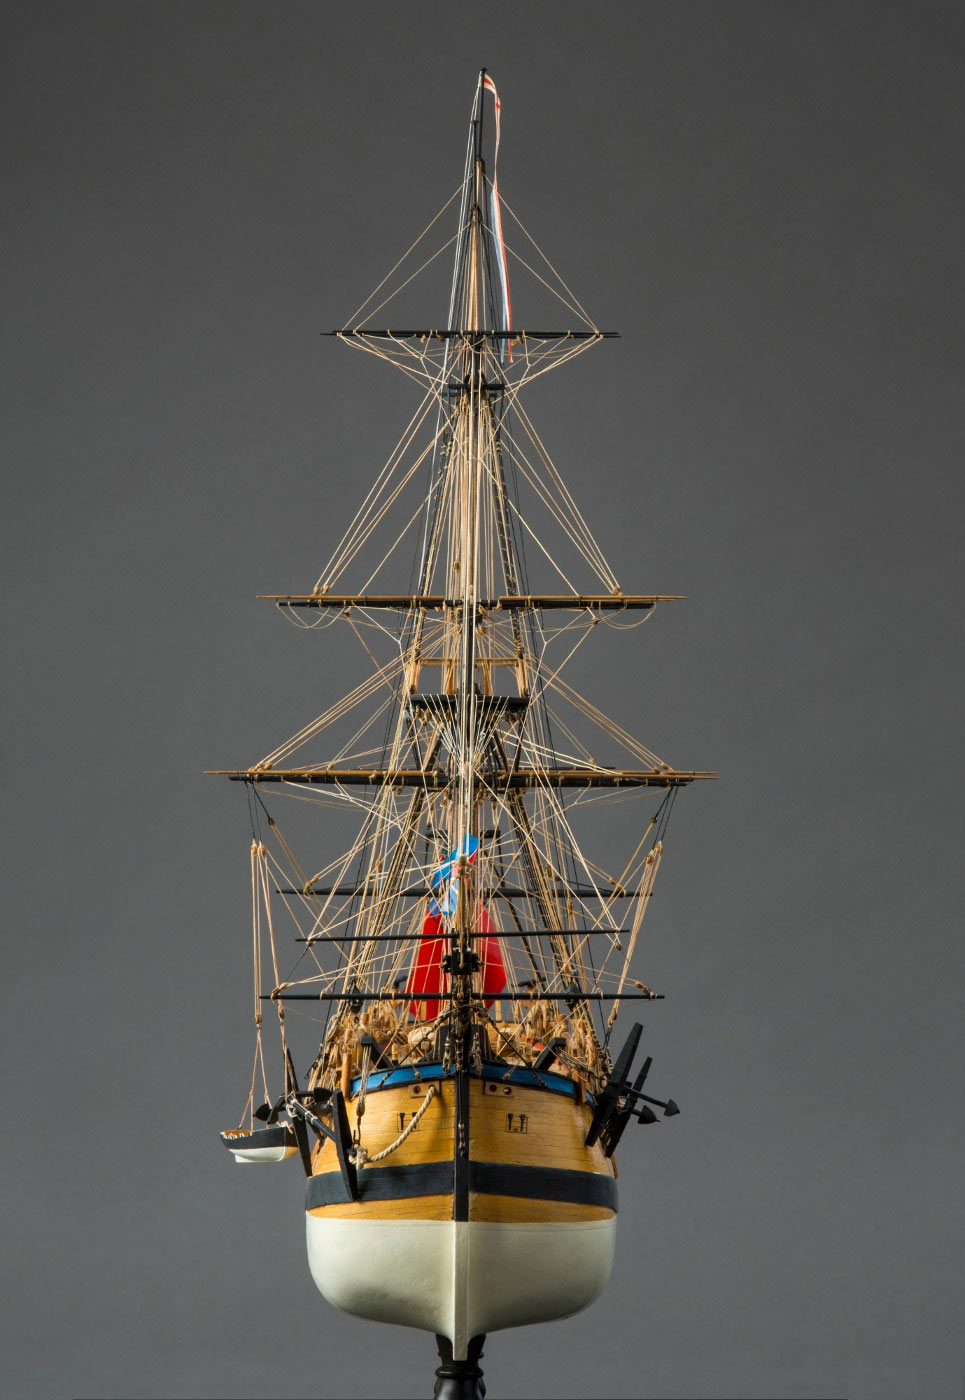 Front view of a model wooden sailing ship, with tall masts and rigging, and anchors at front either side. - click to view larger image